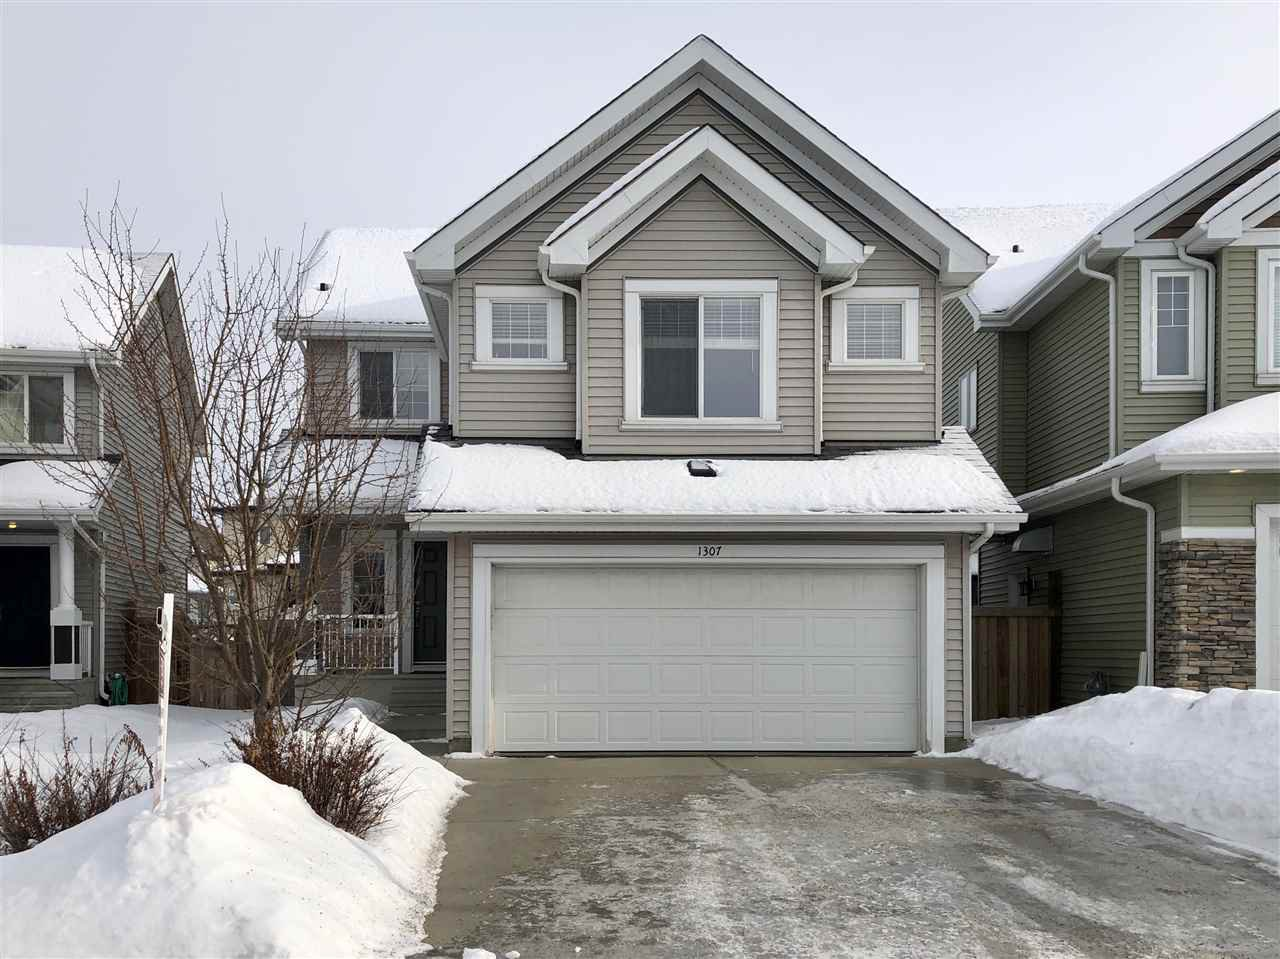 Main Photo: 1307 72 Street in Edmonton: Zone 53 House for sale : MLS®# E4183891